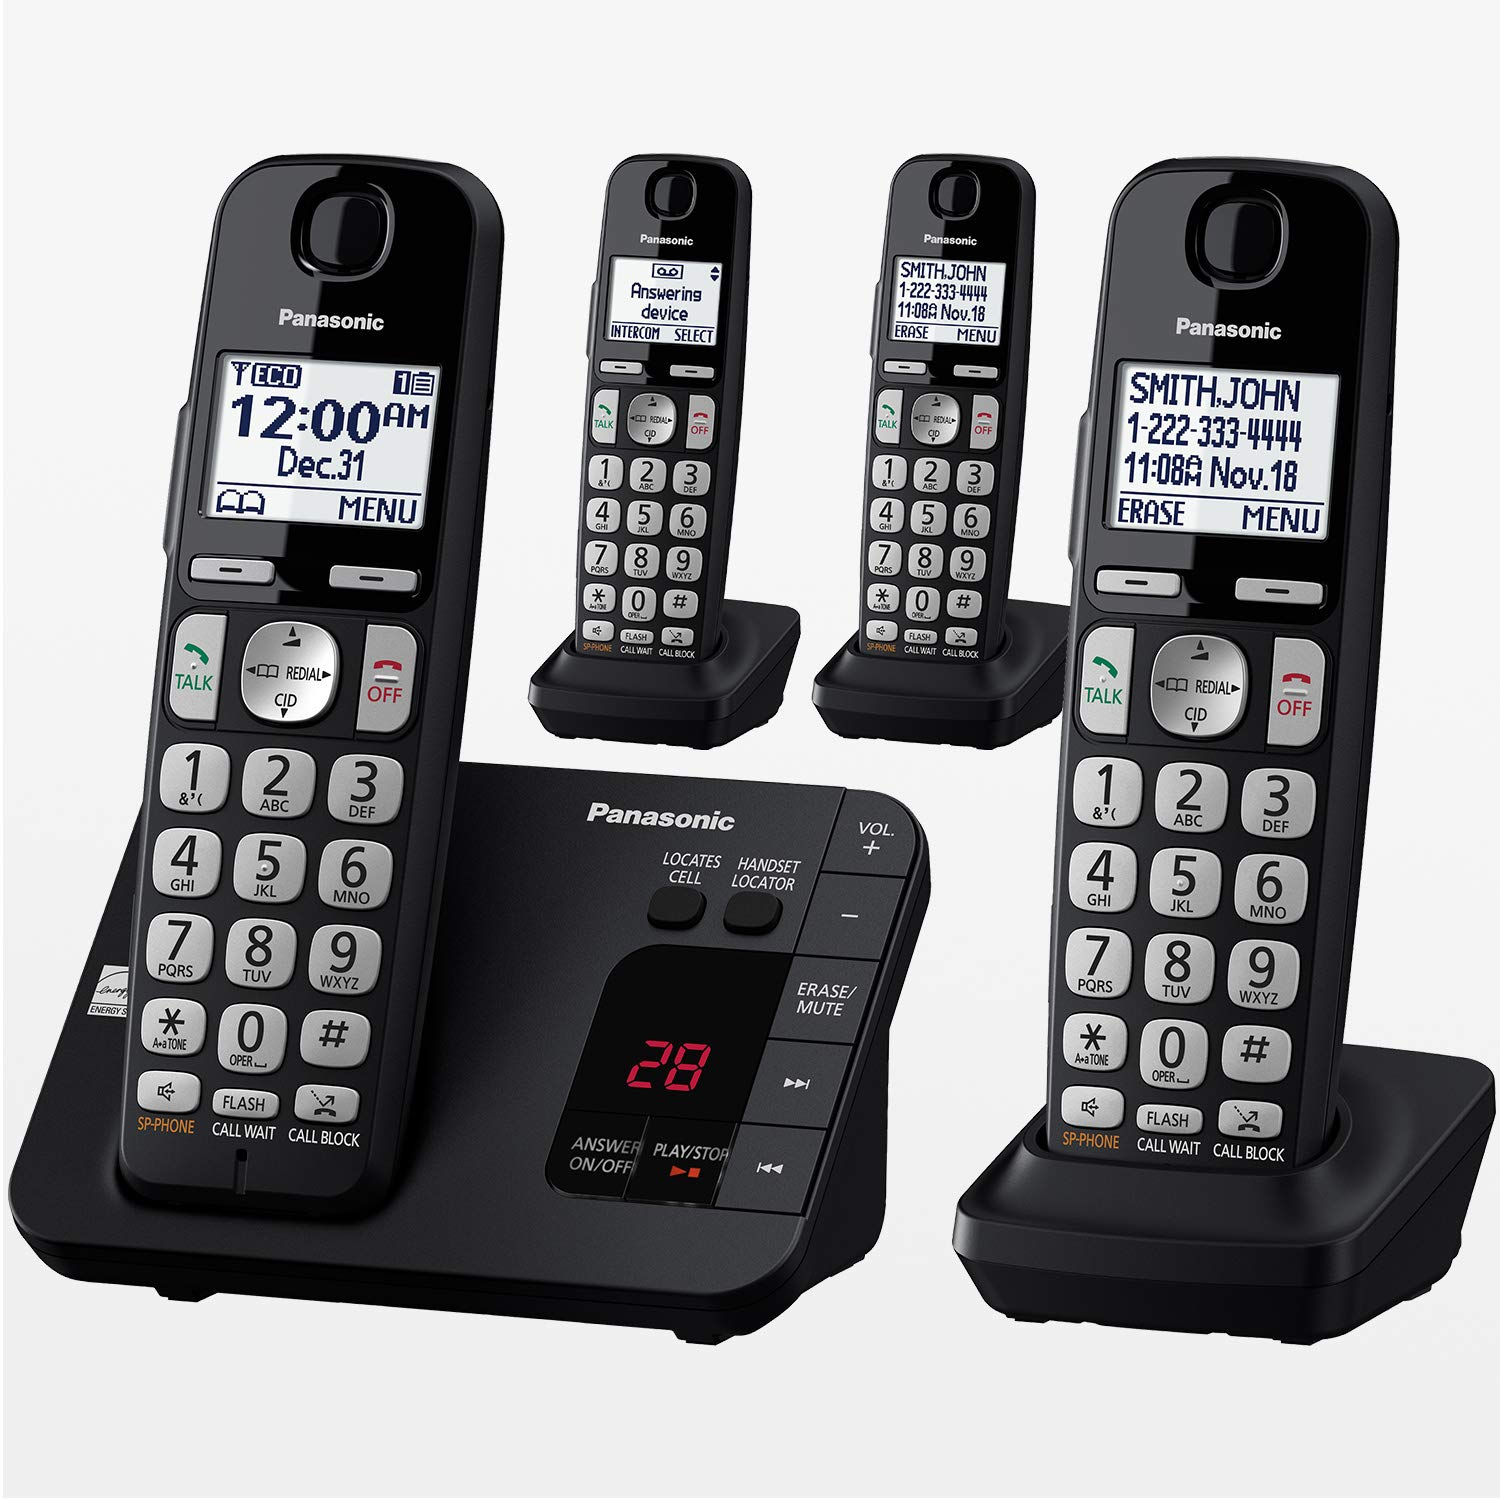 PANASONIC DECT 6.0 Expandable Cordless Phone System with Answering Machine and Call Blocking - 4 Handsets - KX-TGE434B (Black)